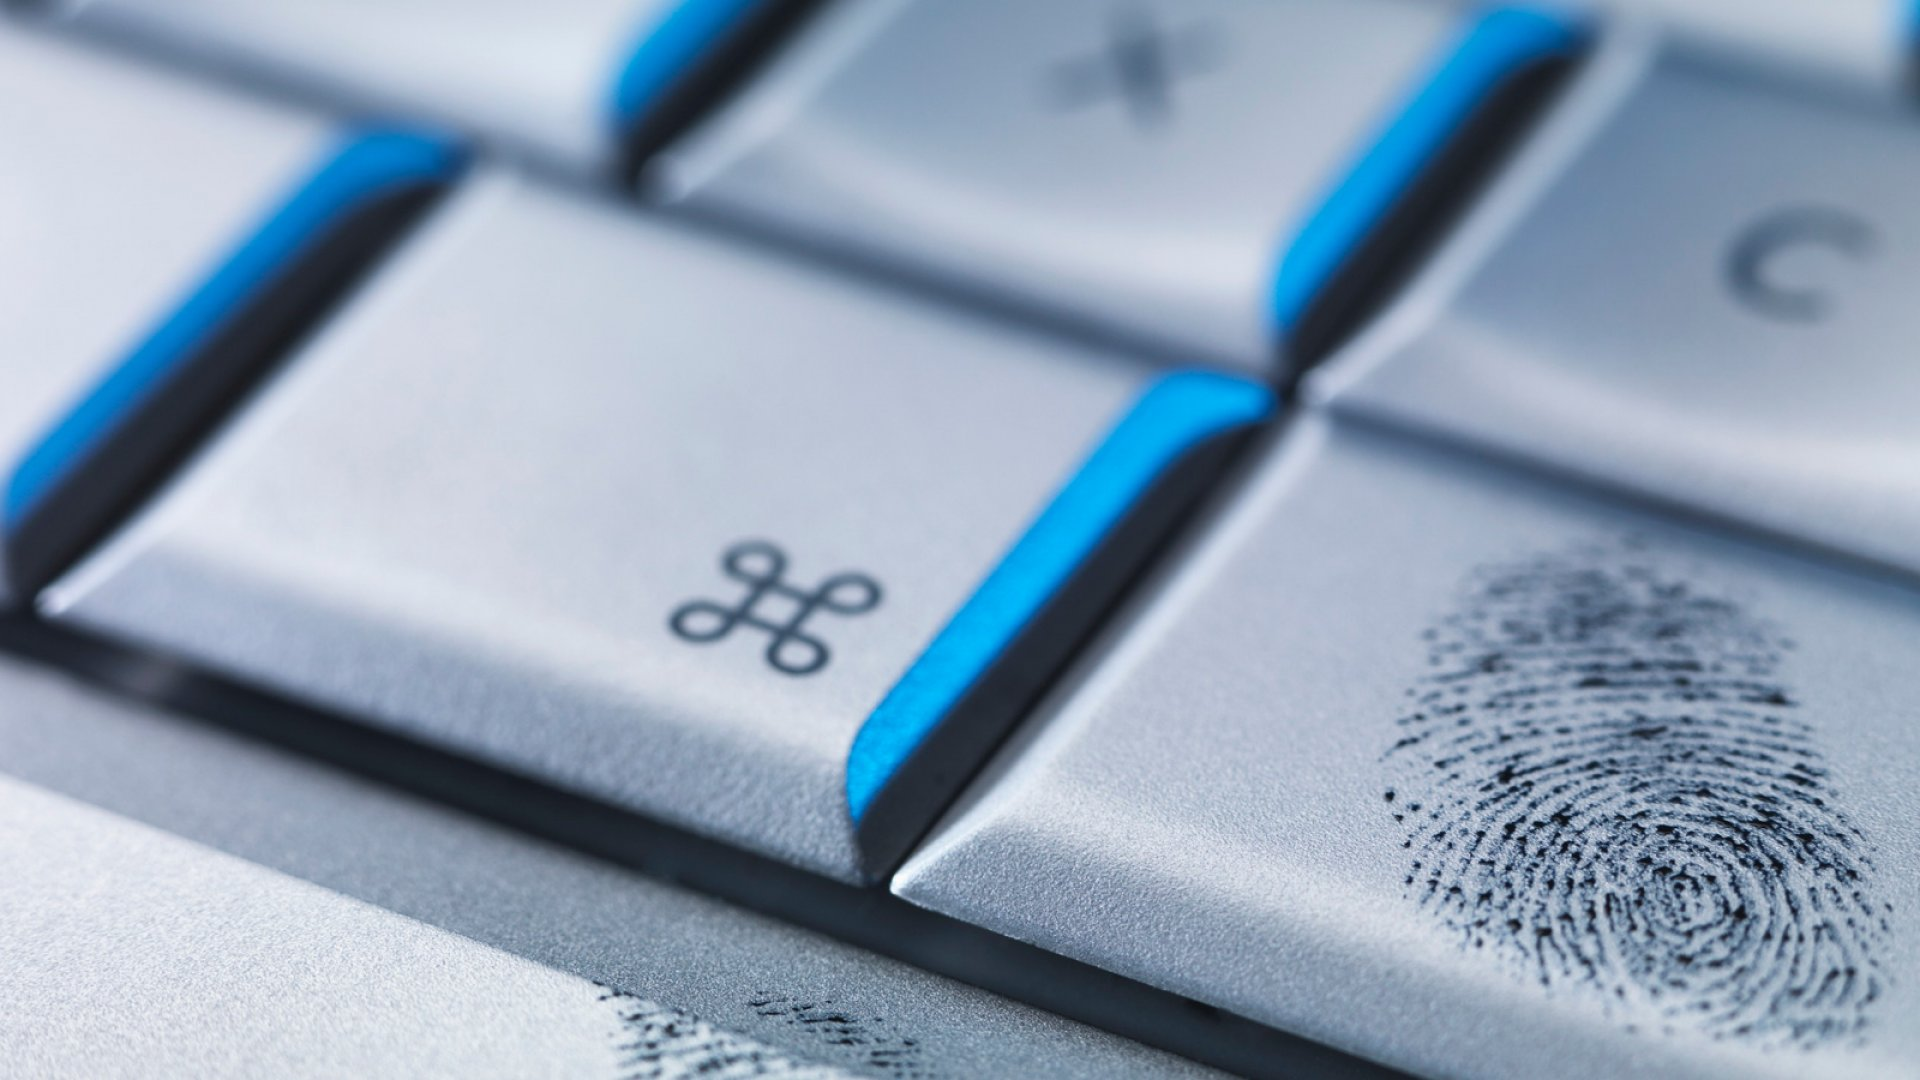 How Vulnerable Are You to Identity Theft?